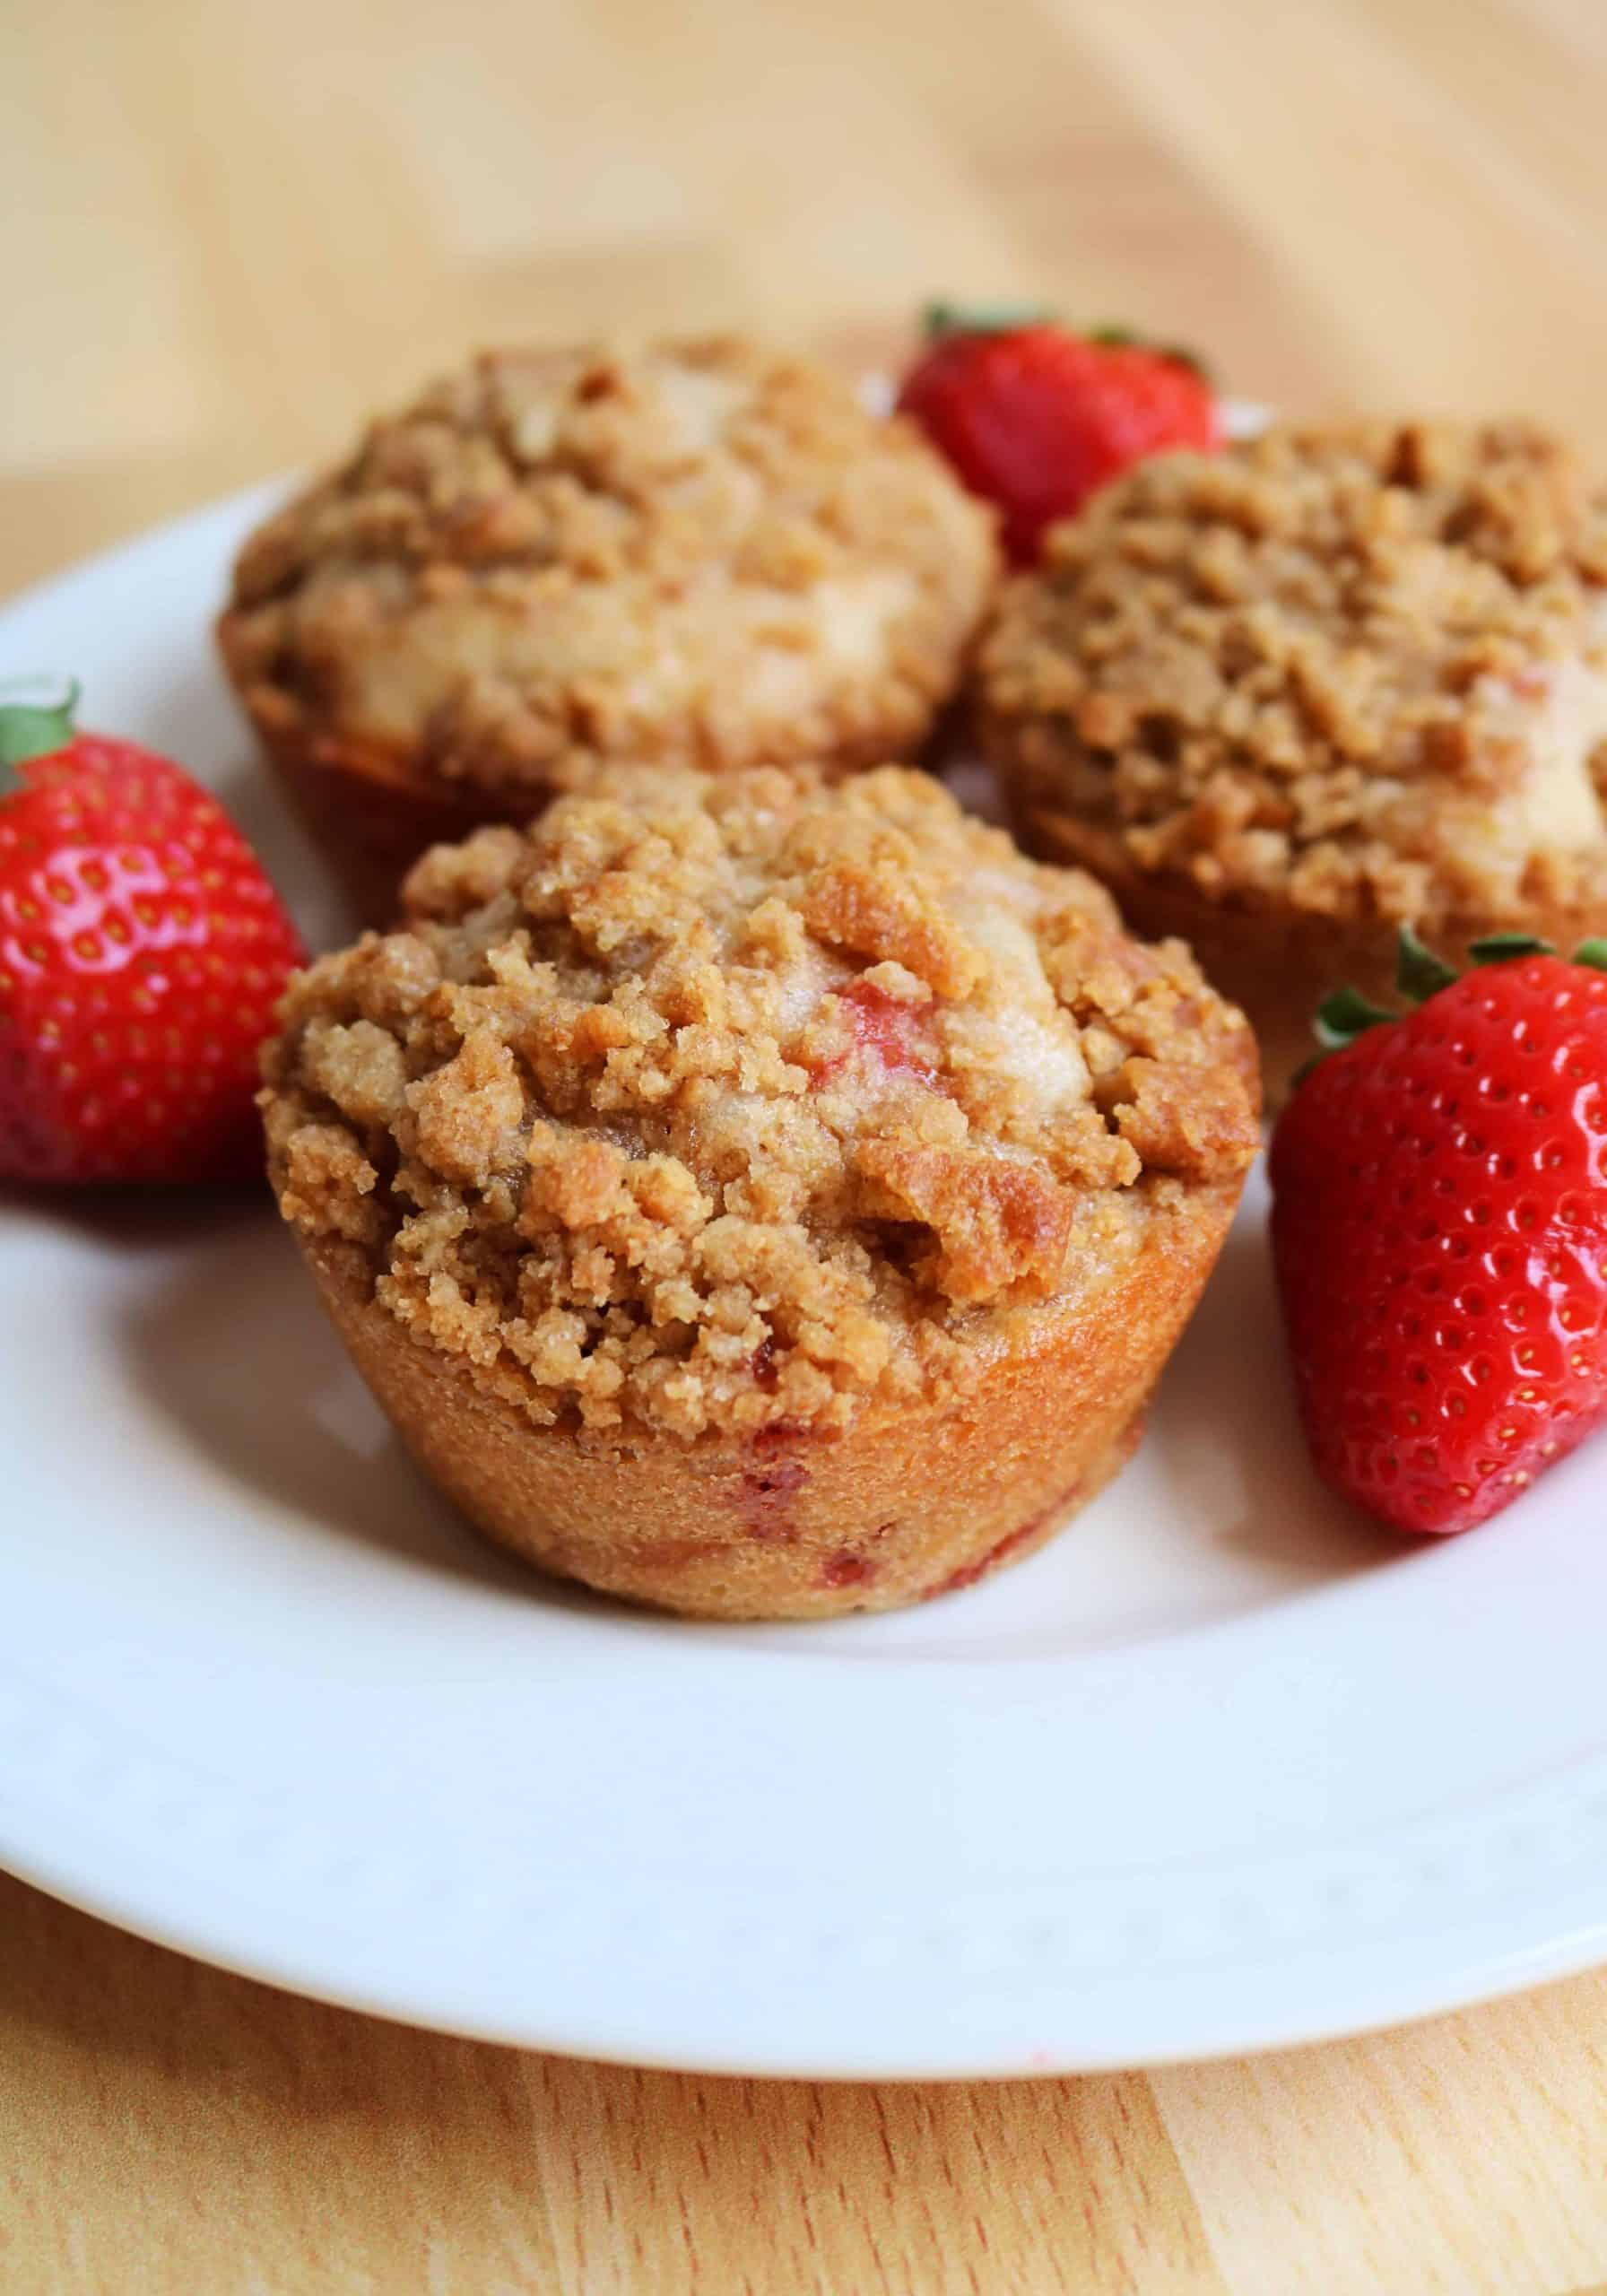 Try my easy and delicious Homemade Strawberry Cheesecake Muffins for breakfast this weekend! These strawberry muffins are soft, delicious, and feature diced fresh strawberries, a surprise lemon cream cheese filling, and a graham cracker and brown sugar streusel topping. #strawberrymuffins #strawberrycheesecakemuffins #breakfastrecipe #muffins